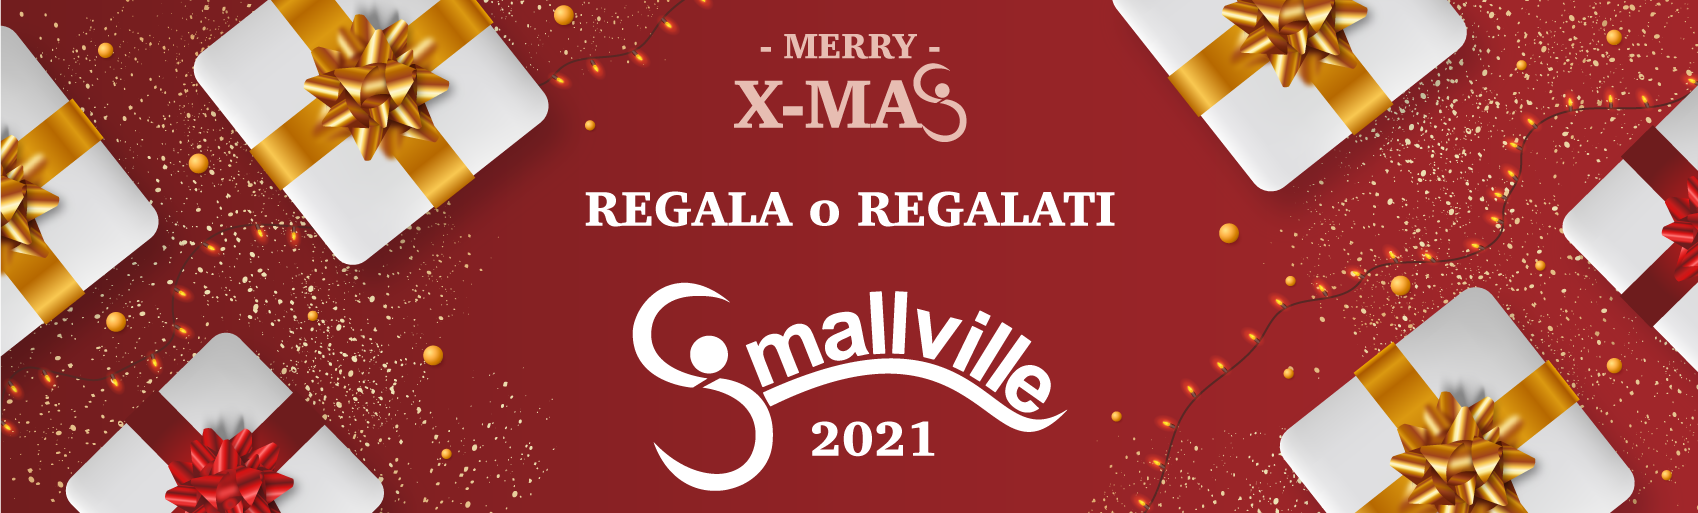 smallville-2020-xmas-regala